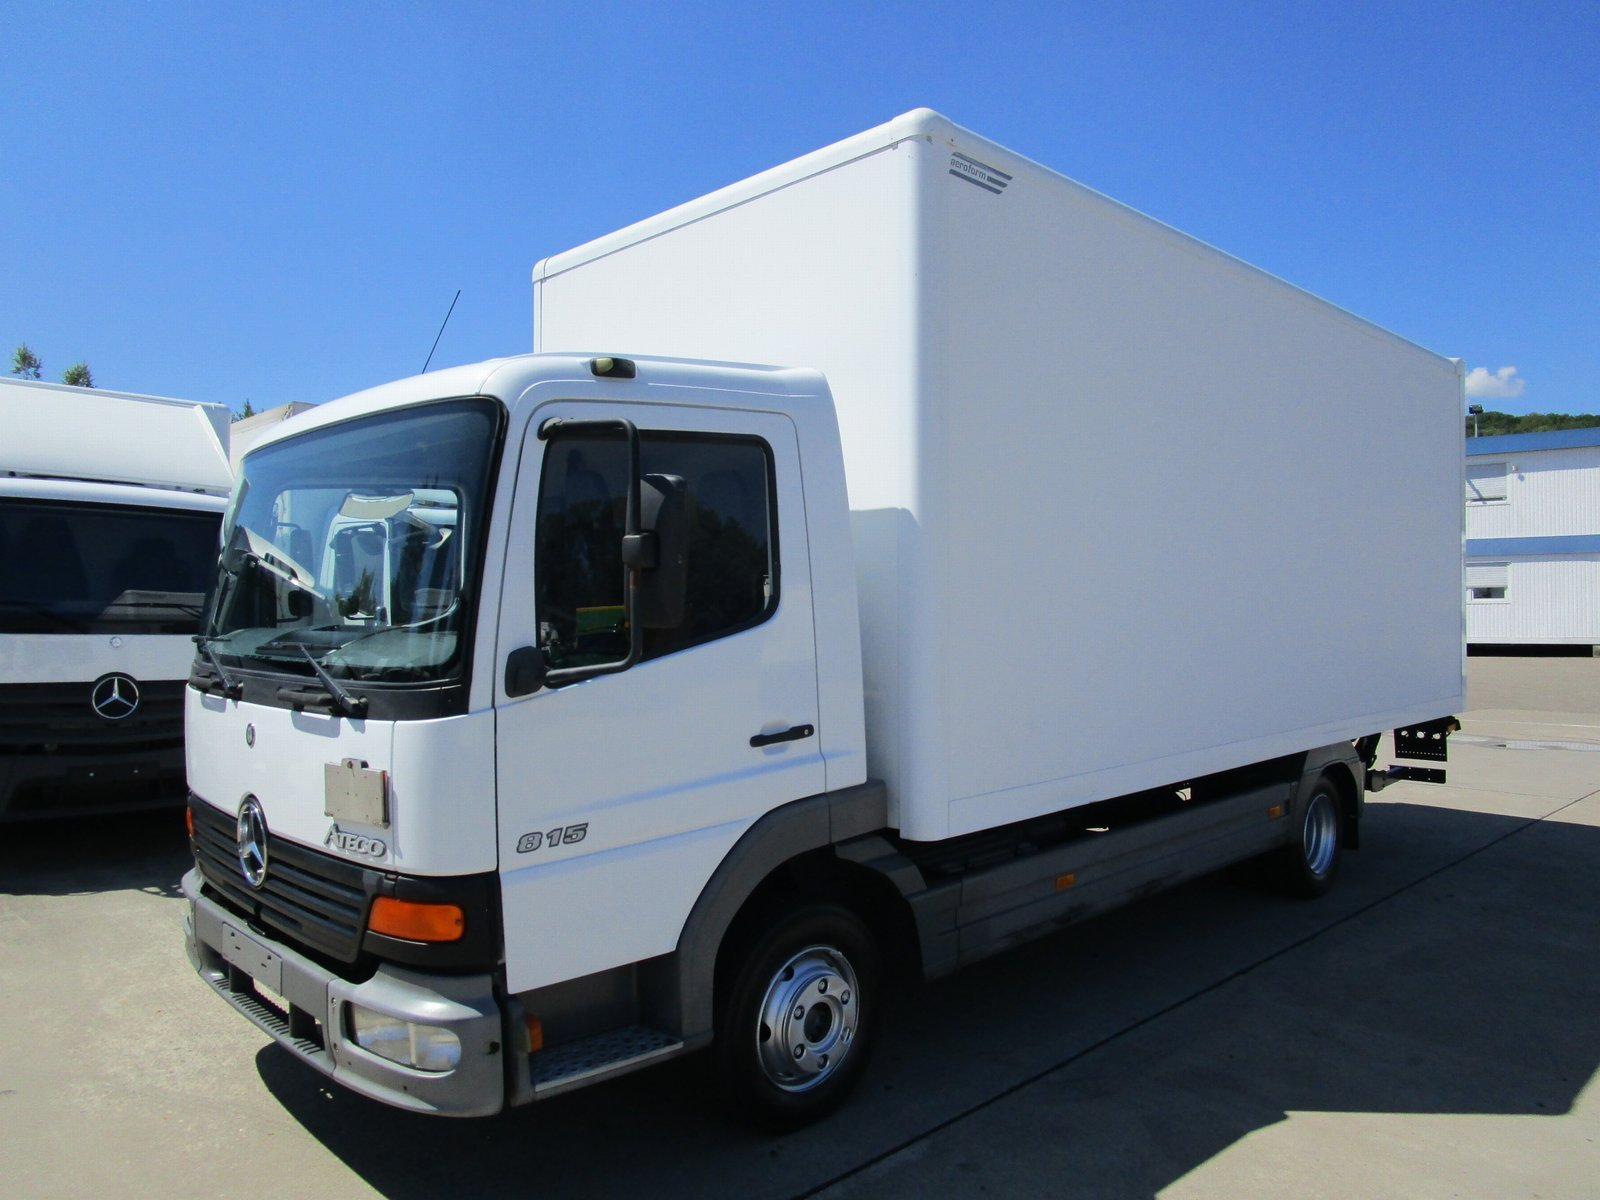 ATEGO 815 Koffer 6,10 m LBW 1 to.